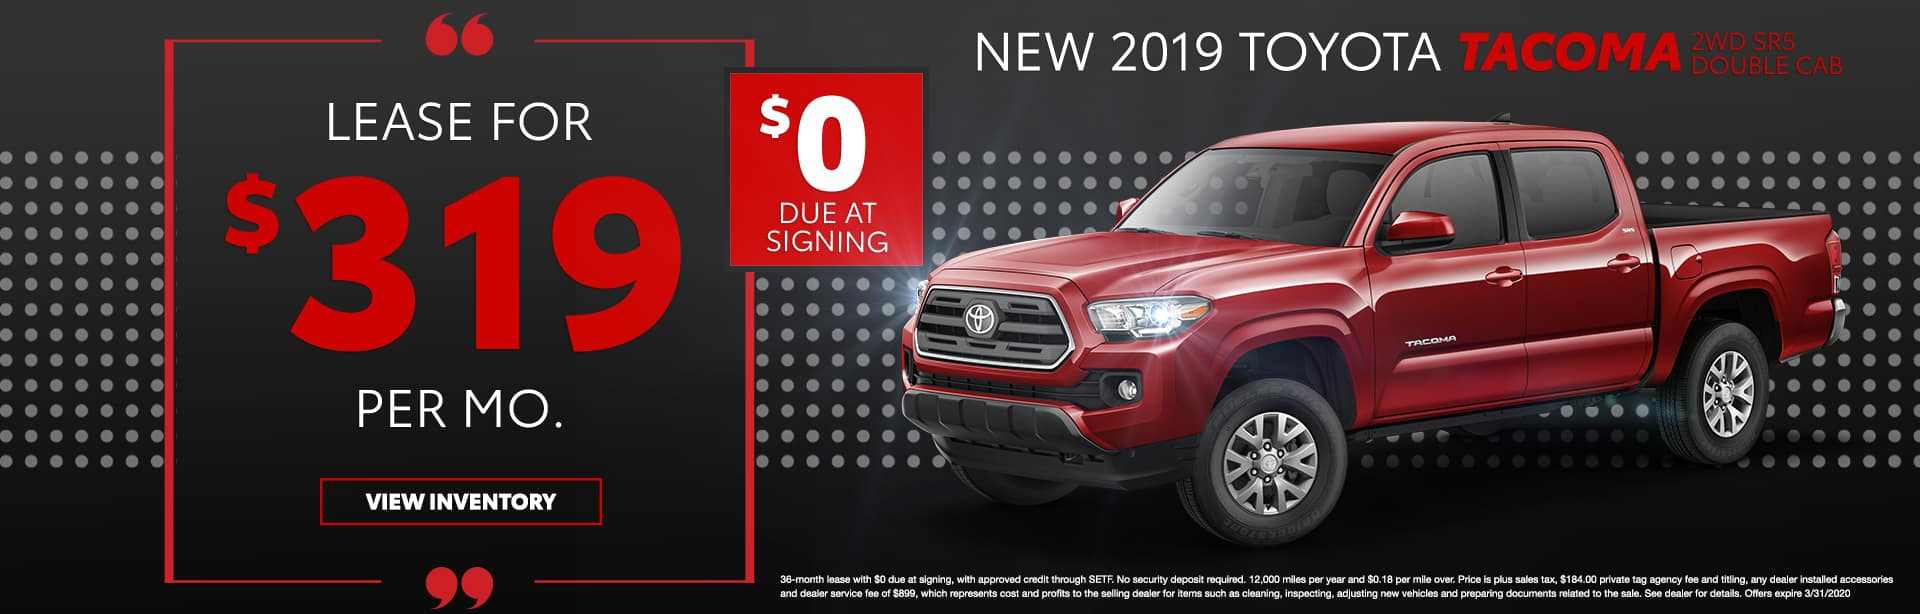 New 2019 Toyota Tacoma 2WD SR5 Double Cab | Lease For $319 Per Mo | $0 Due At Signing